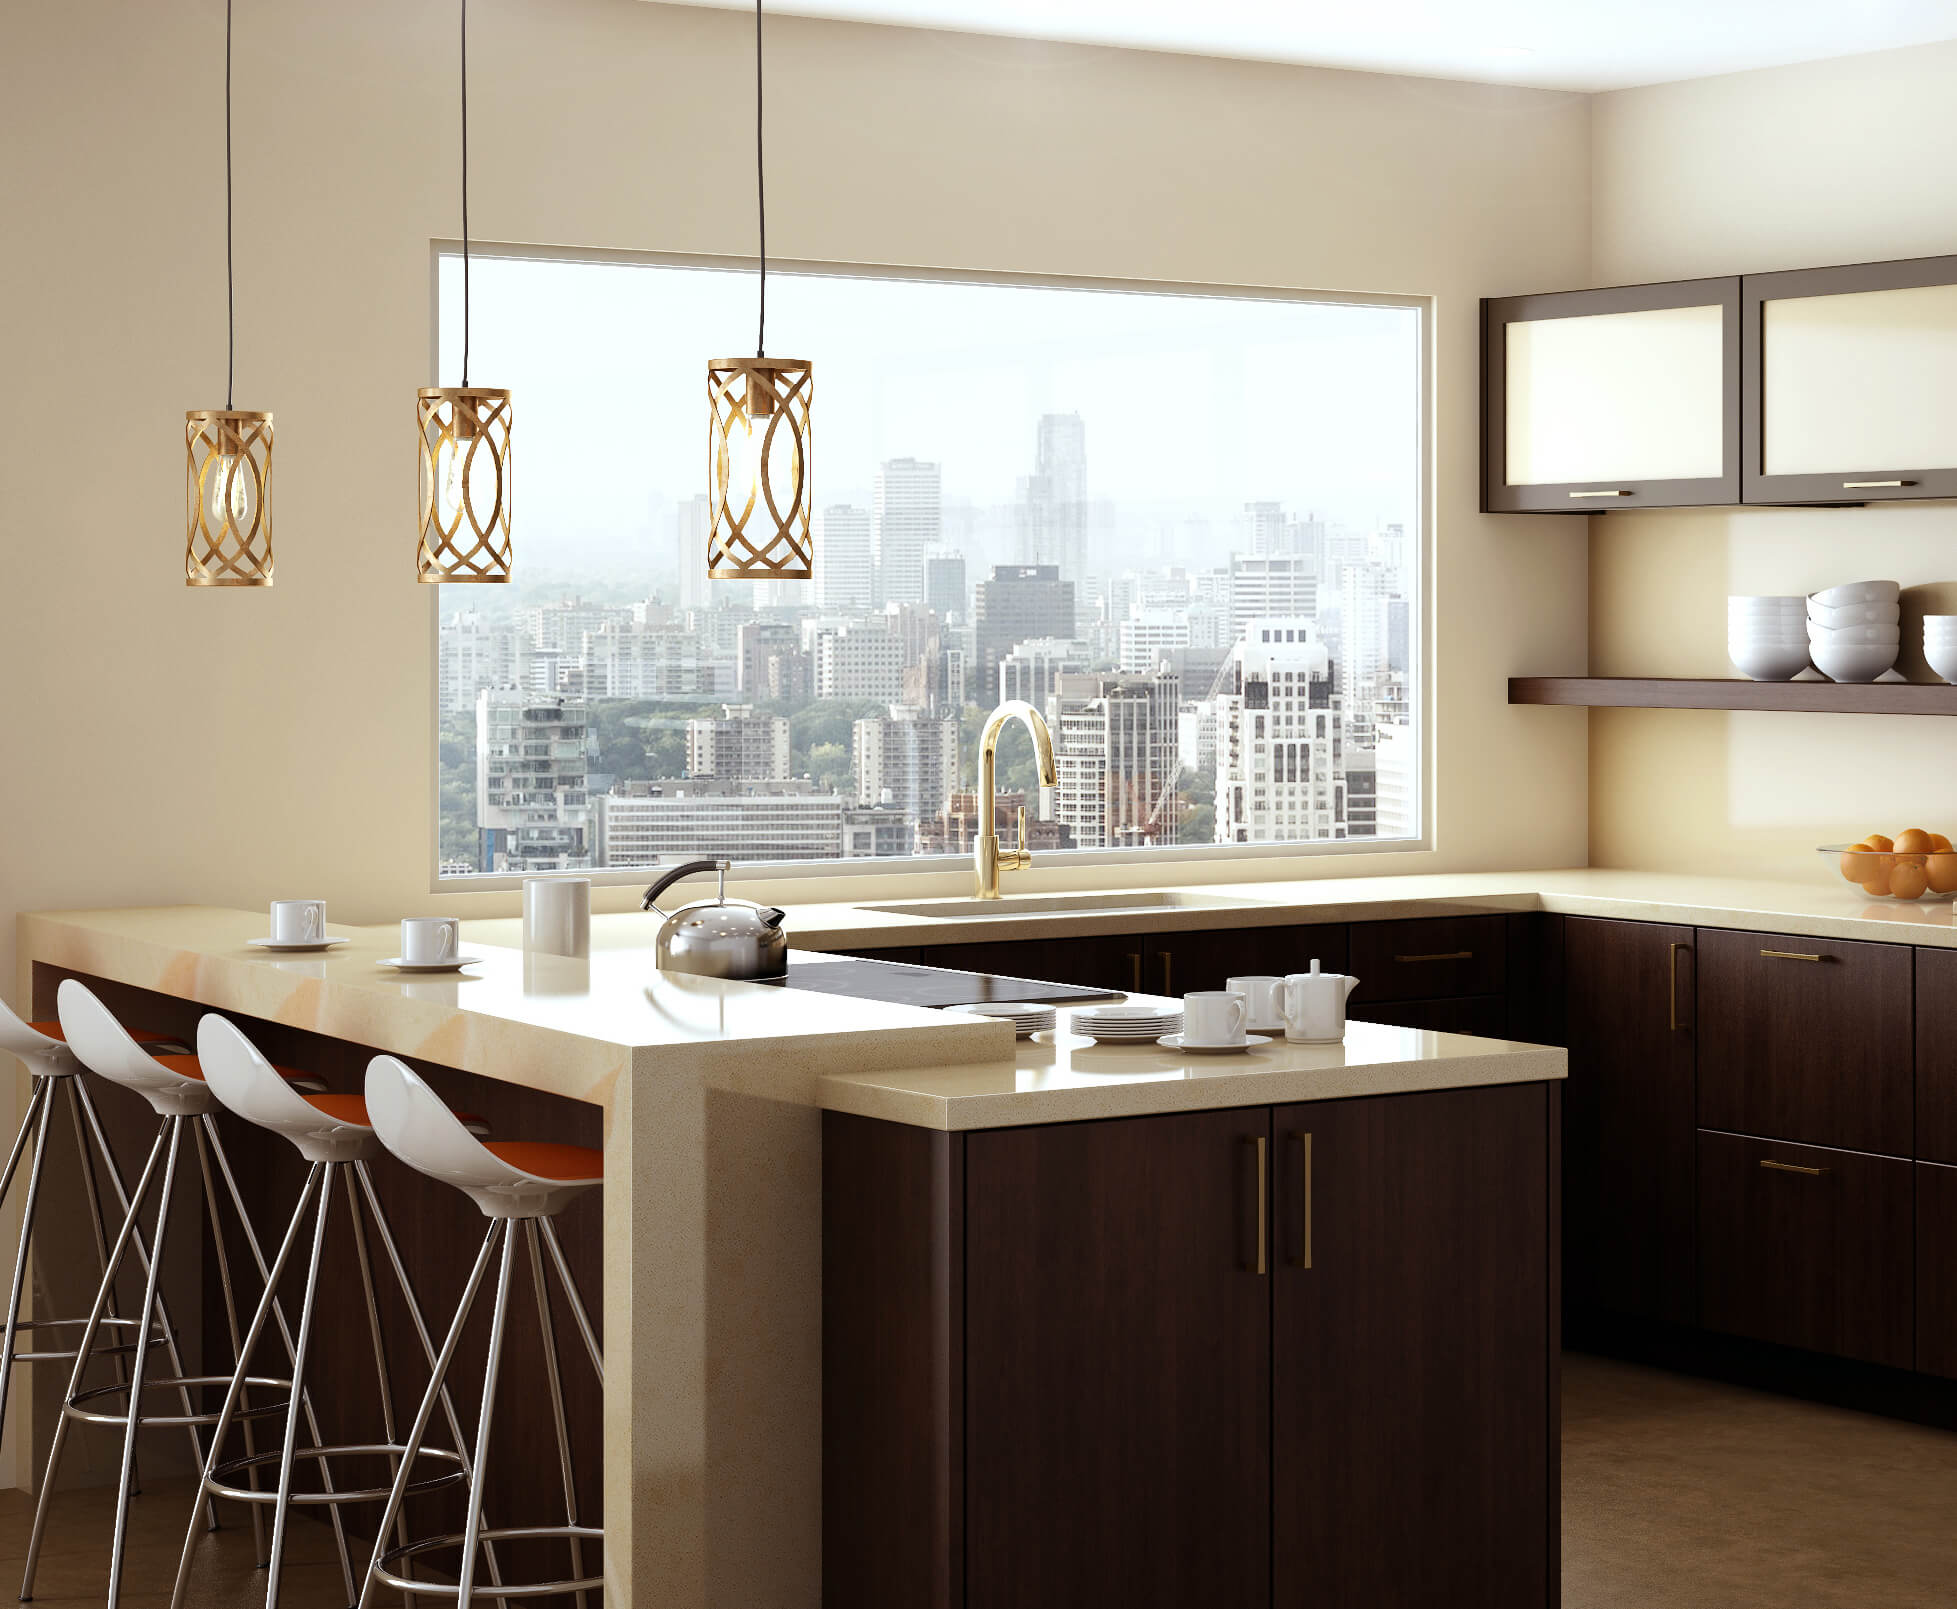 Pendant Lights over a ktichen penninsula in a modern urban loft kitchen design.